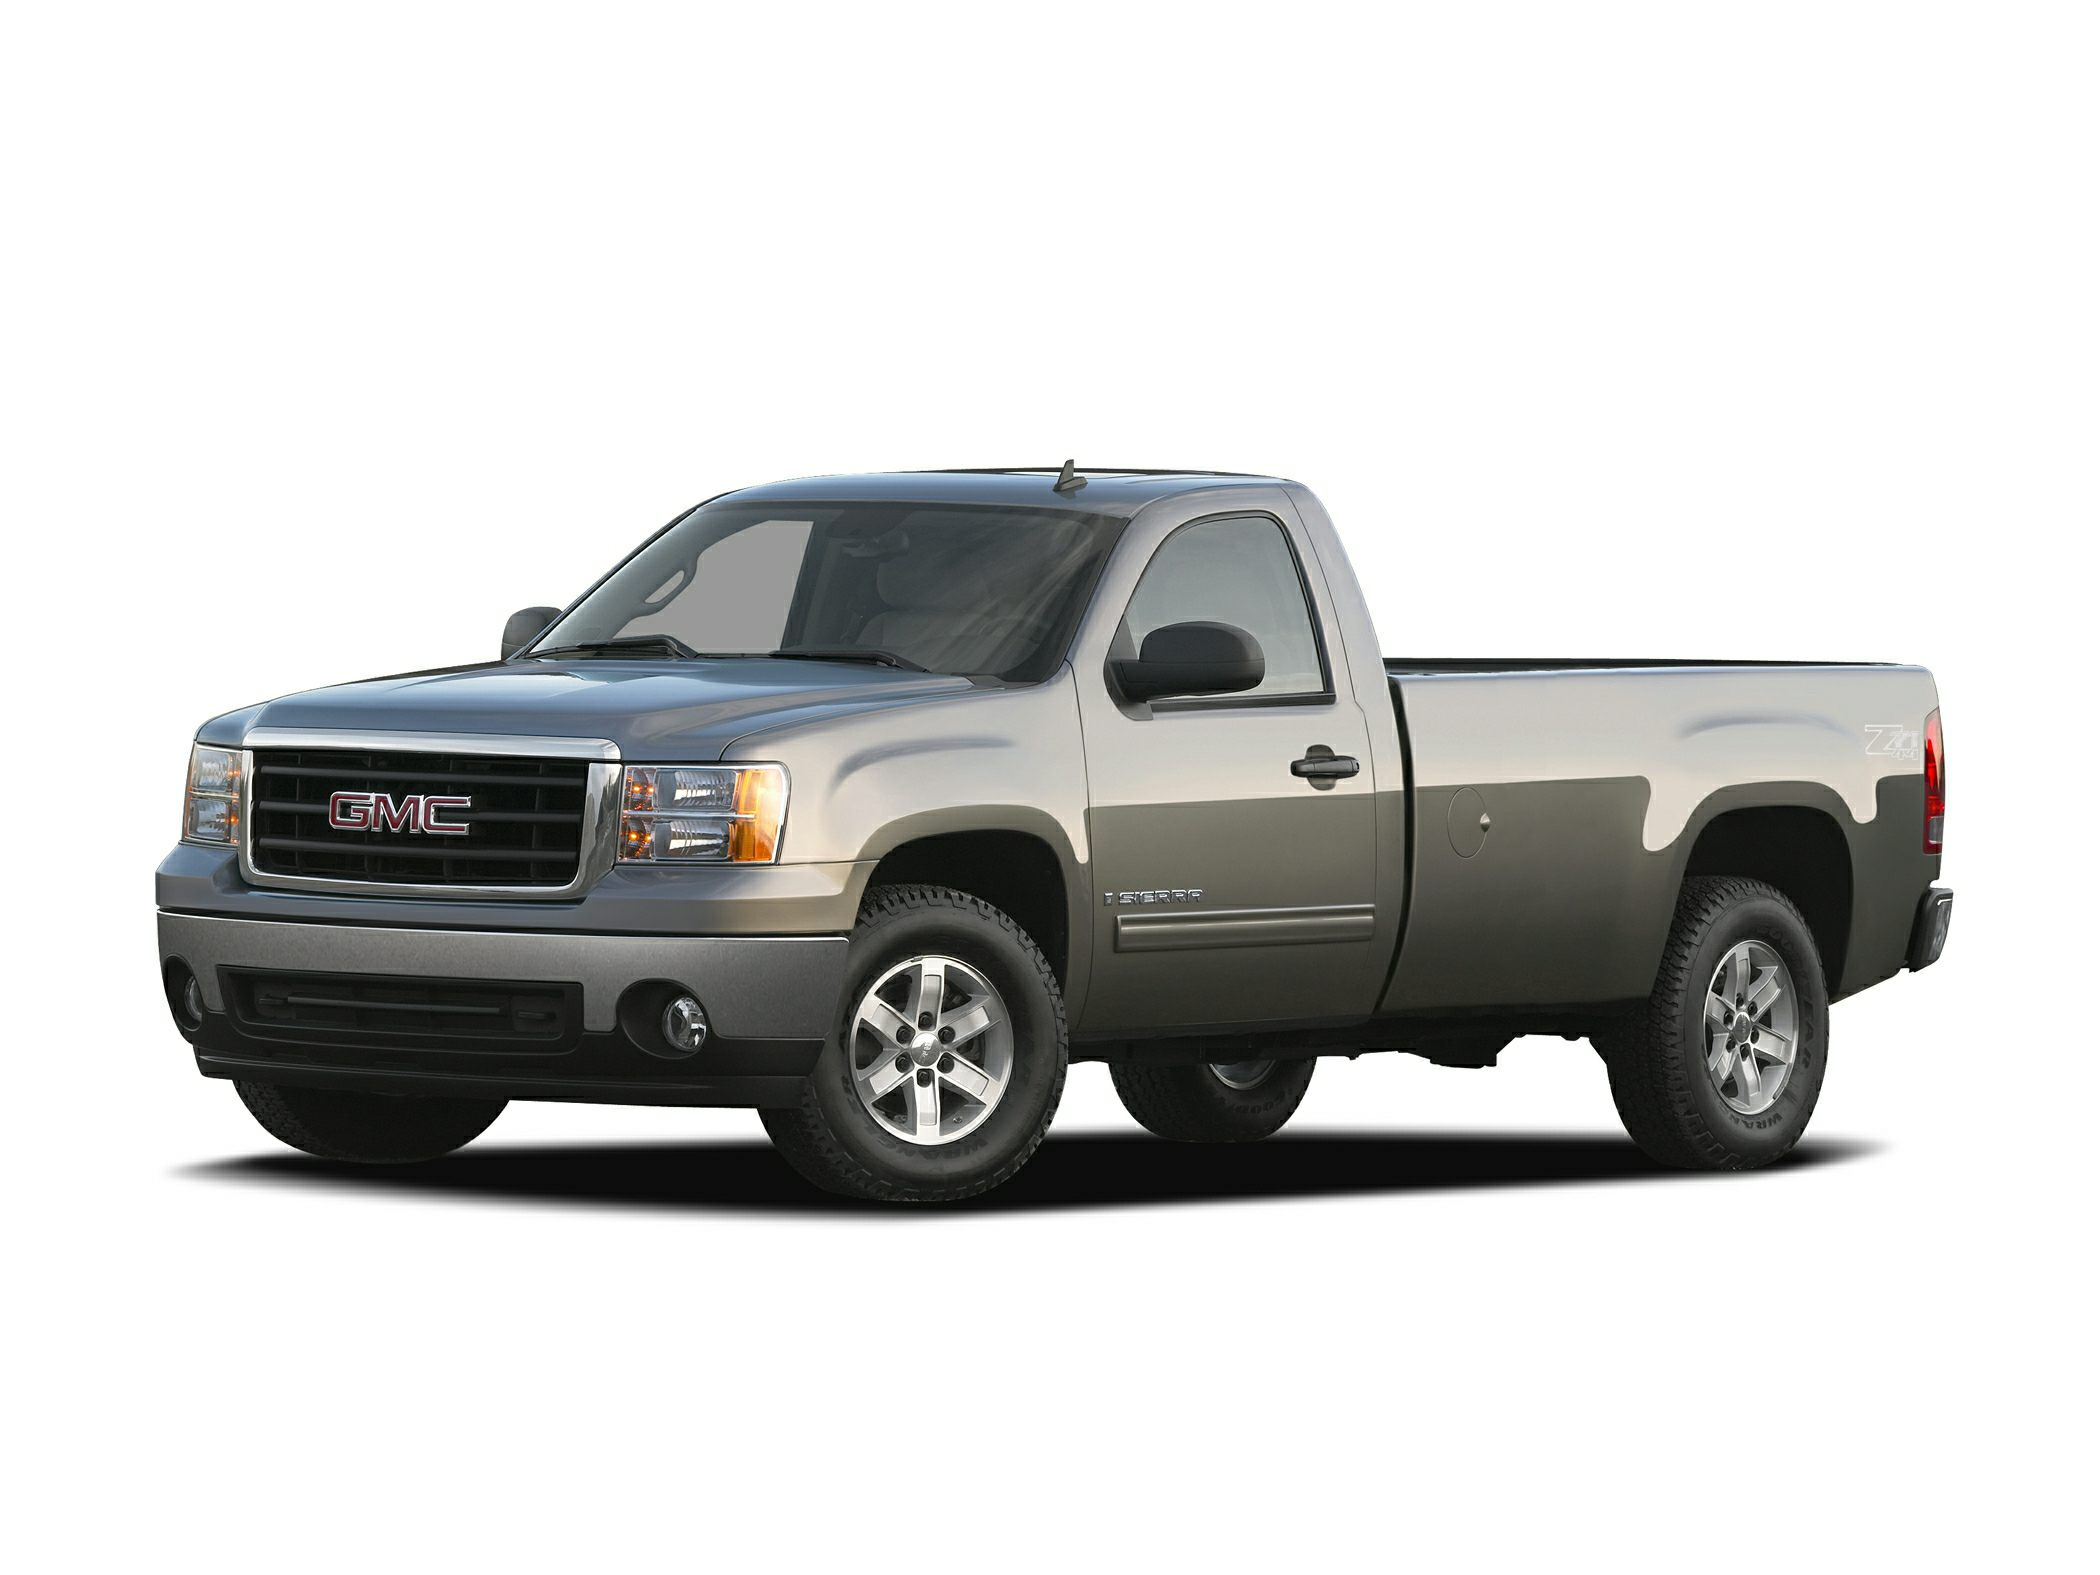 2012 Gmc Sierra Denali Engine Wiring Diagram Libraries 2008 Yukon Diagrams 2007 1500 Specs And Prices2012 17